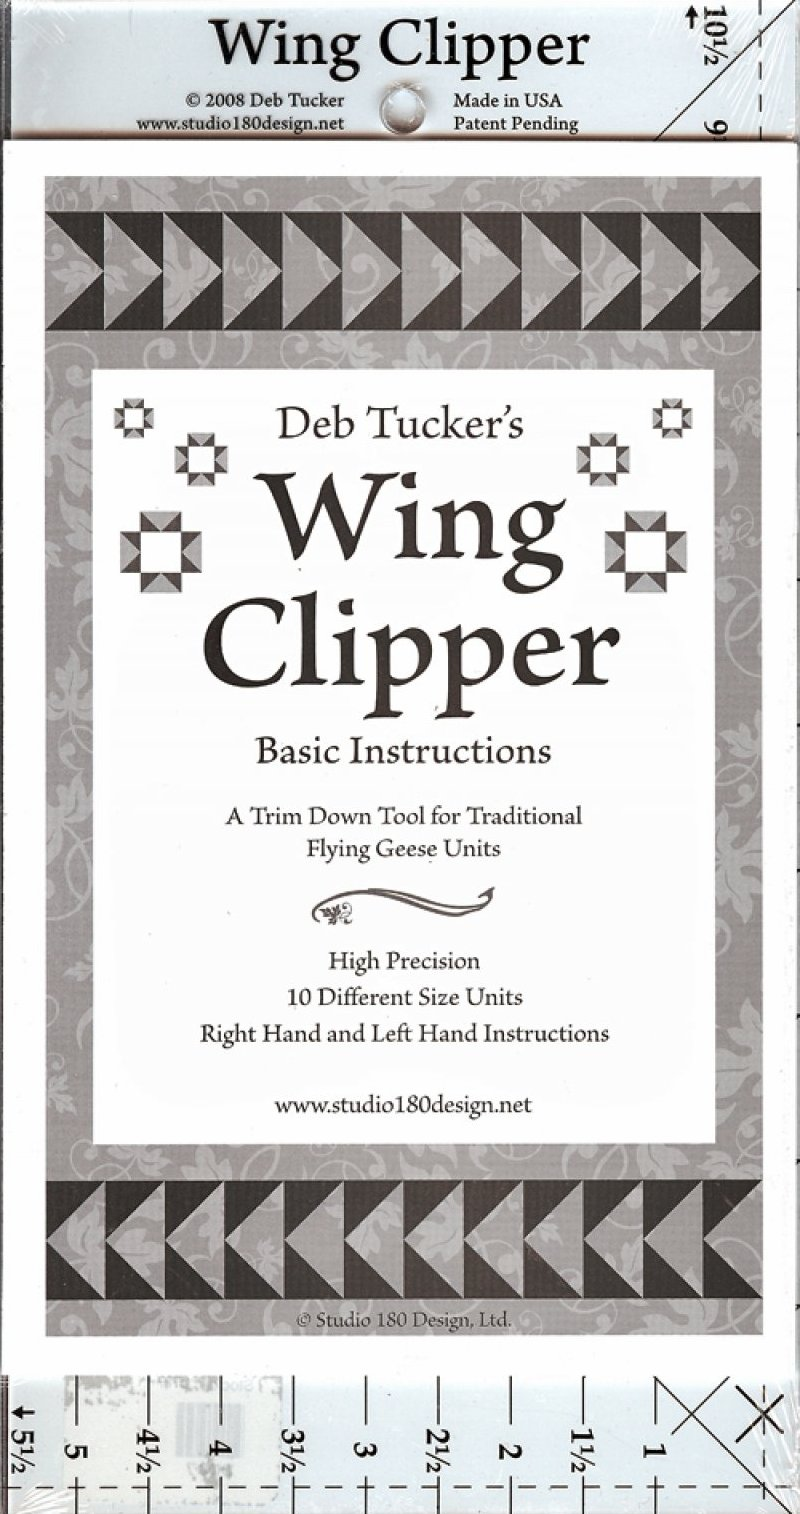 Wing Clipper Trim Down Tool for Traditional Flying Geese Units.